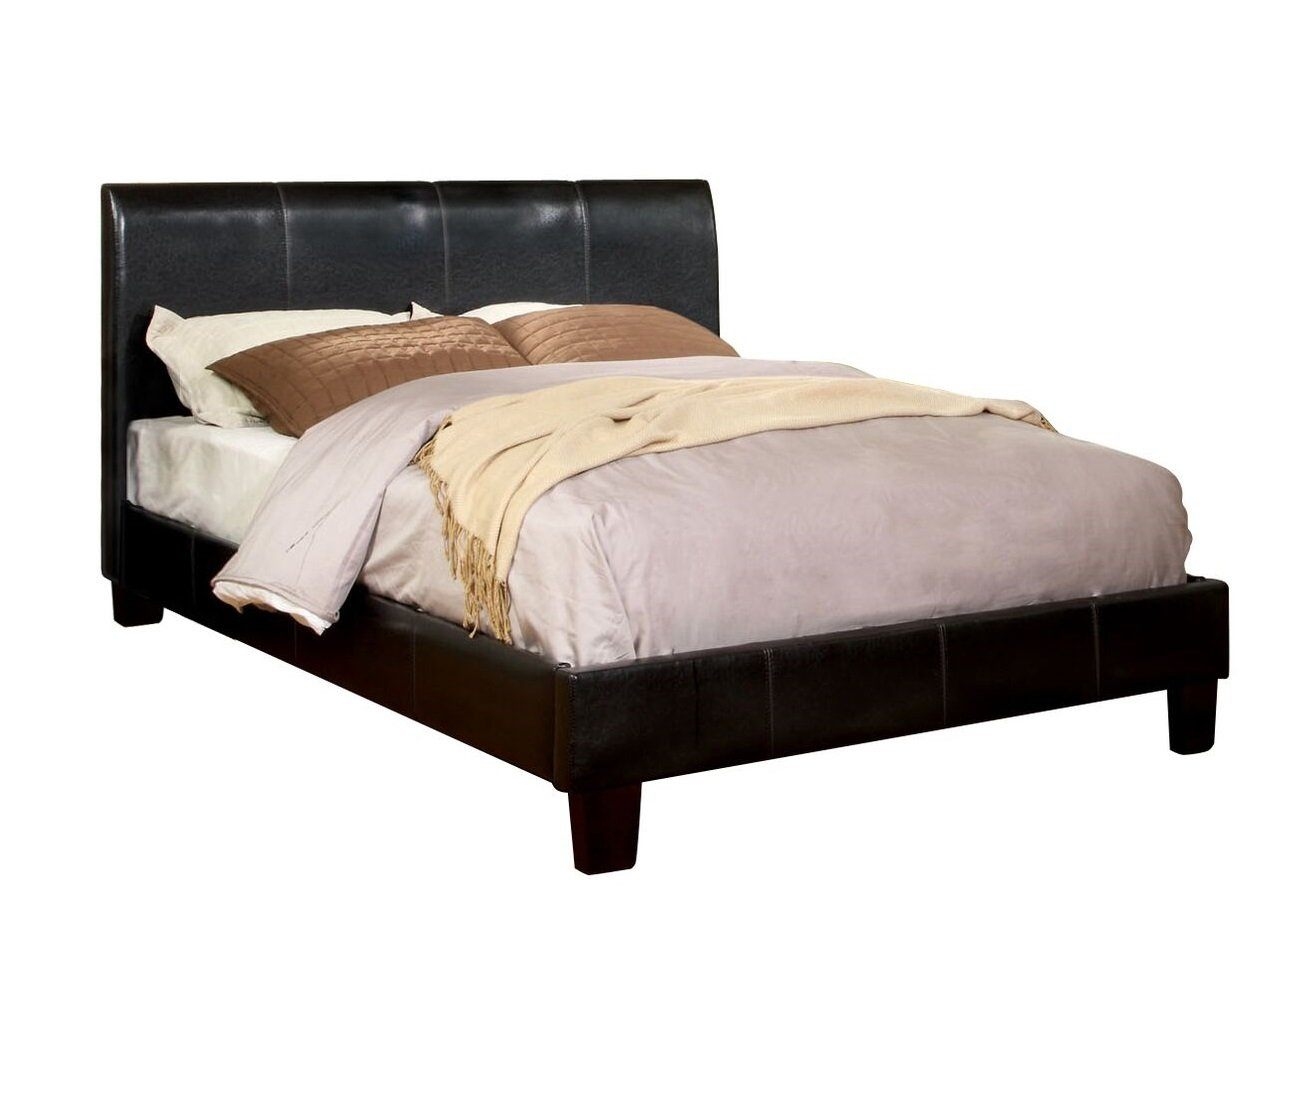 Caris Leatherette Queen Bed Espresso Furniture Enitial Lab